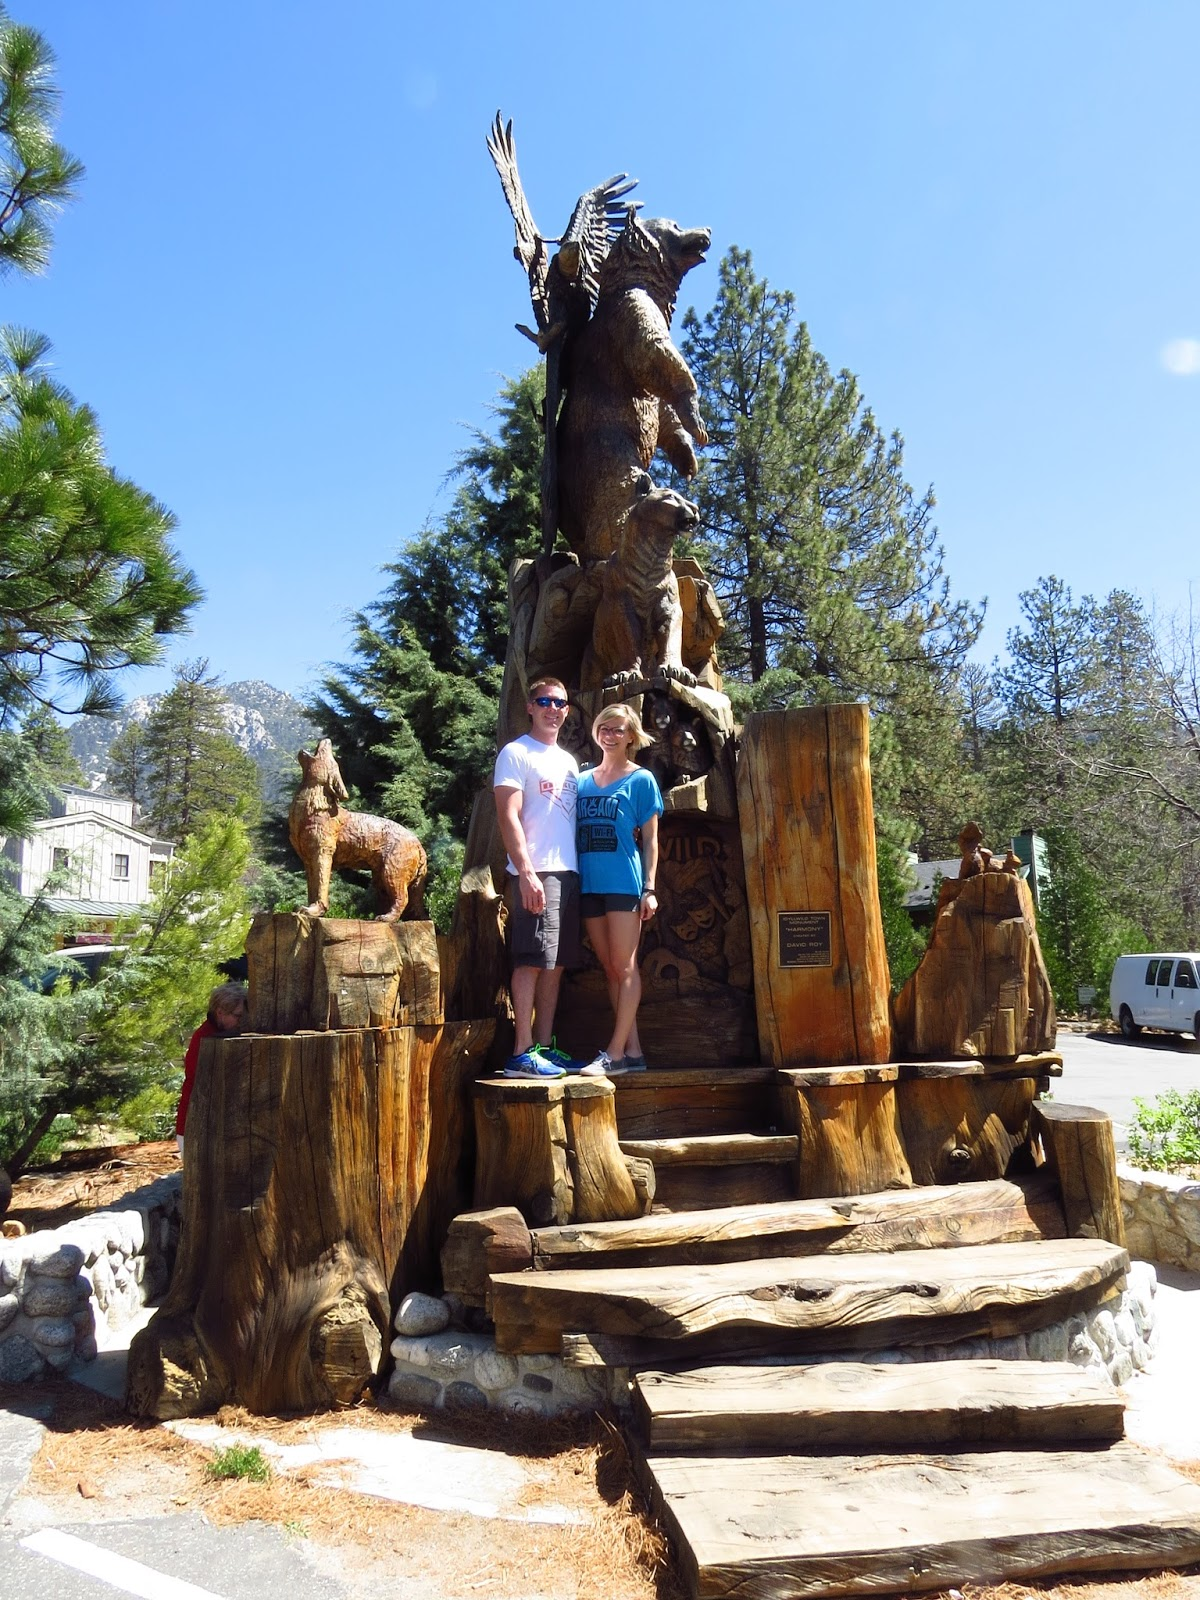 Idyllwild California, Aunie Sauce Travels